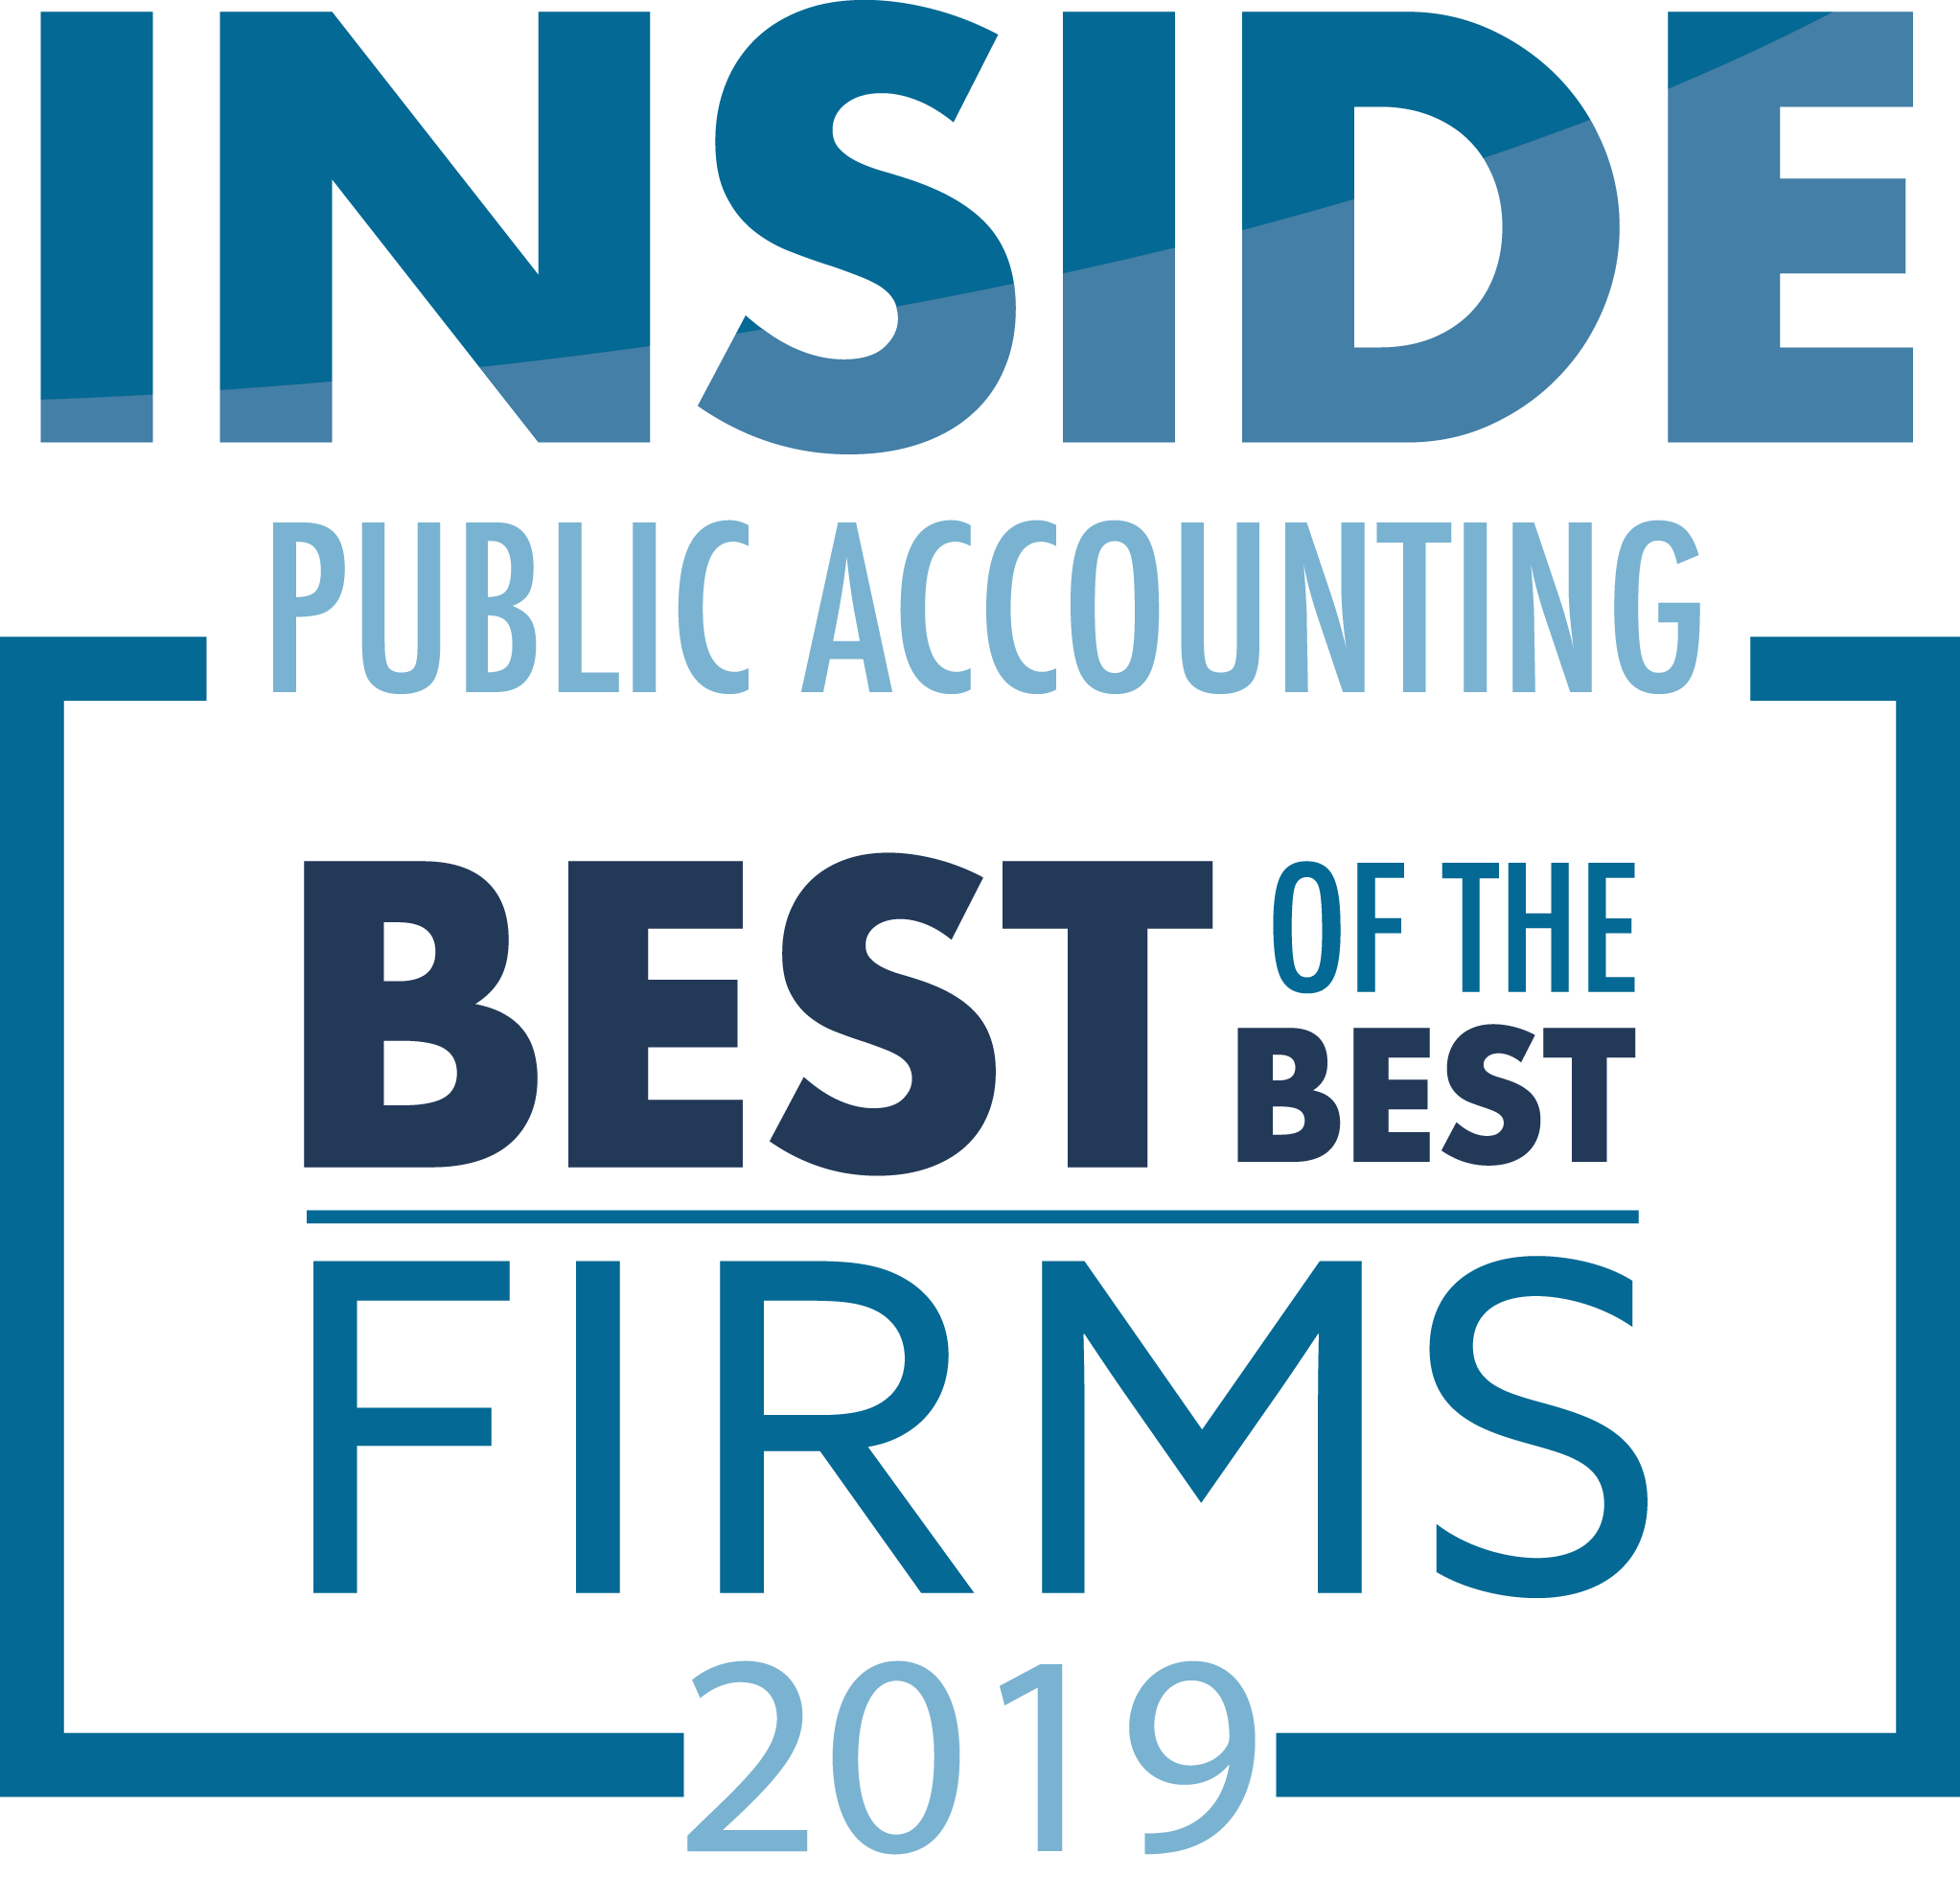 Inside Public Accounting Best of the Best Firms 2018